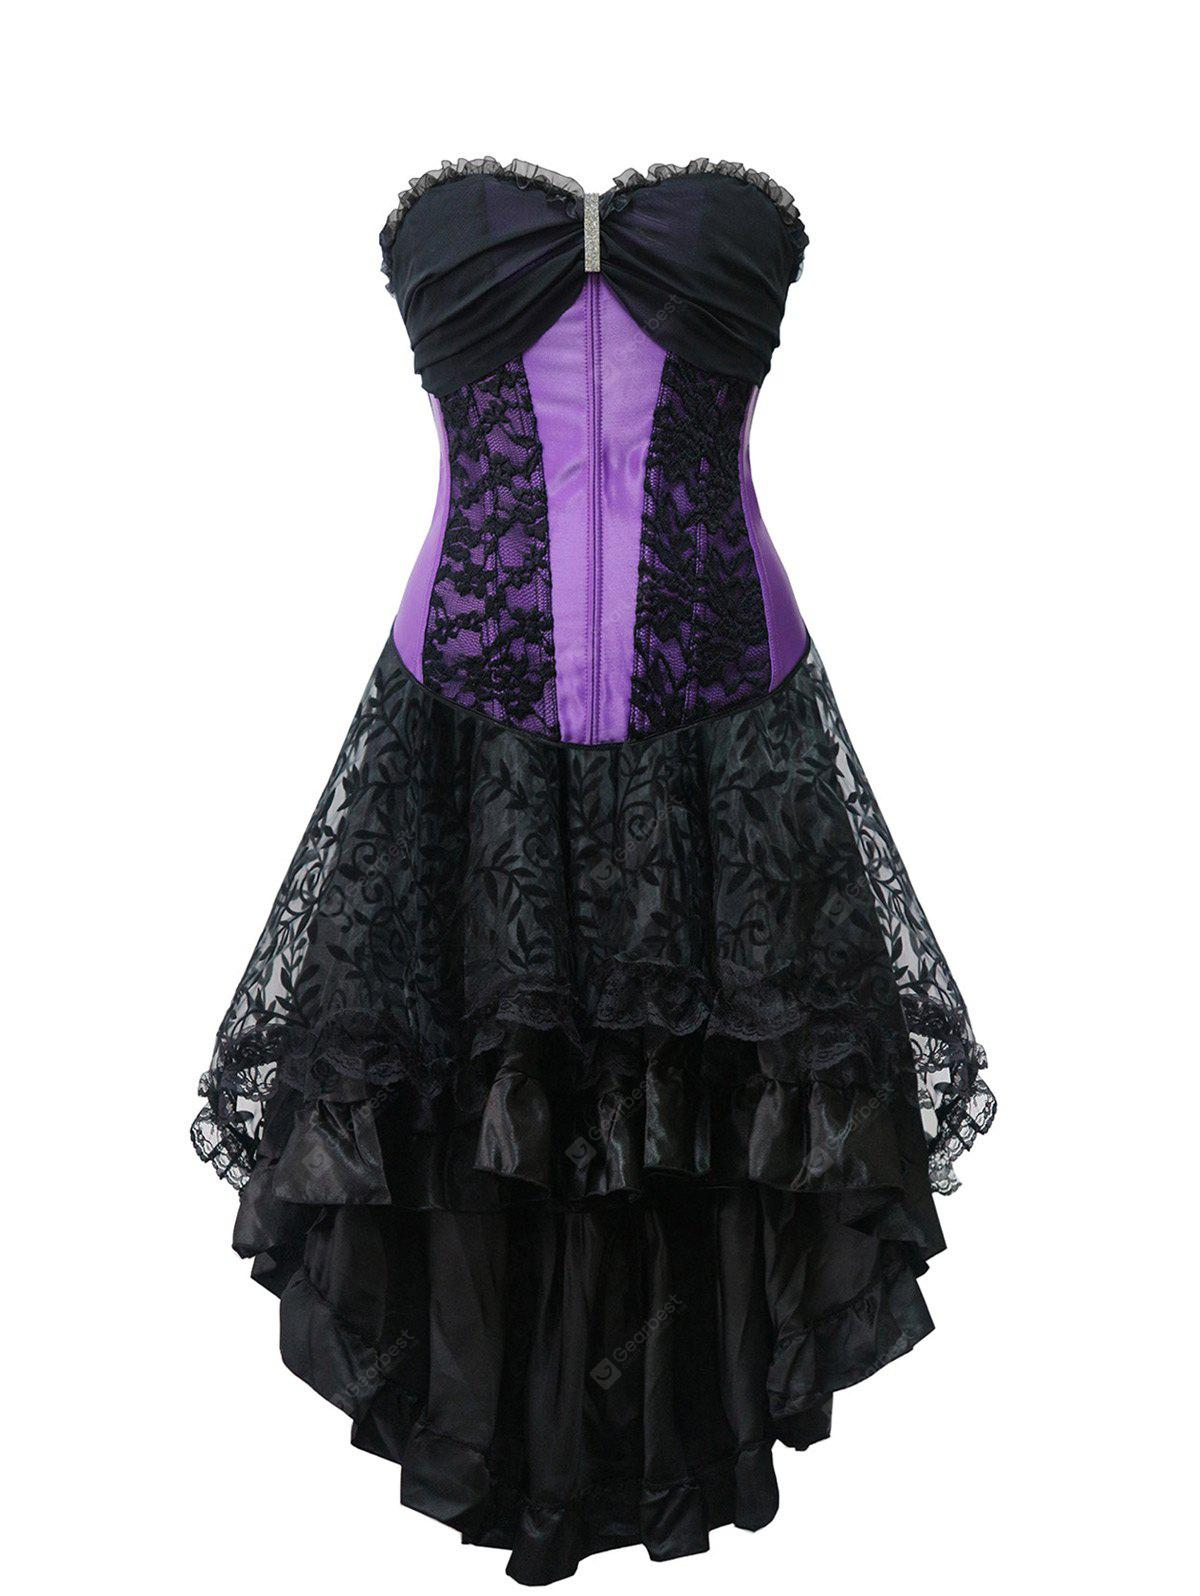 Strapless High Low Steel Boned Corset Dress